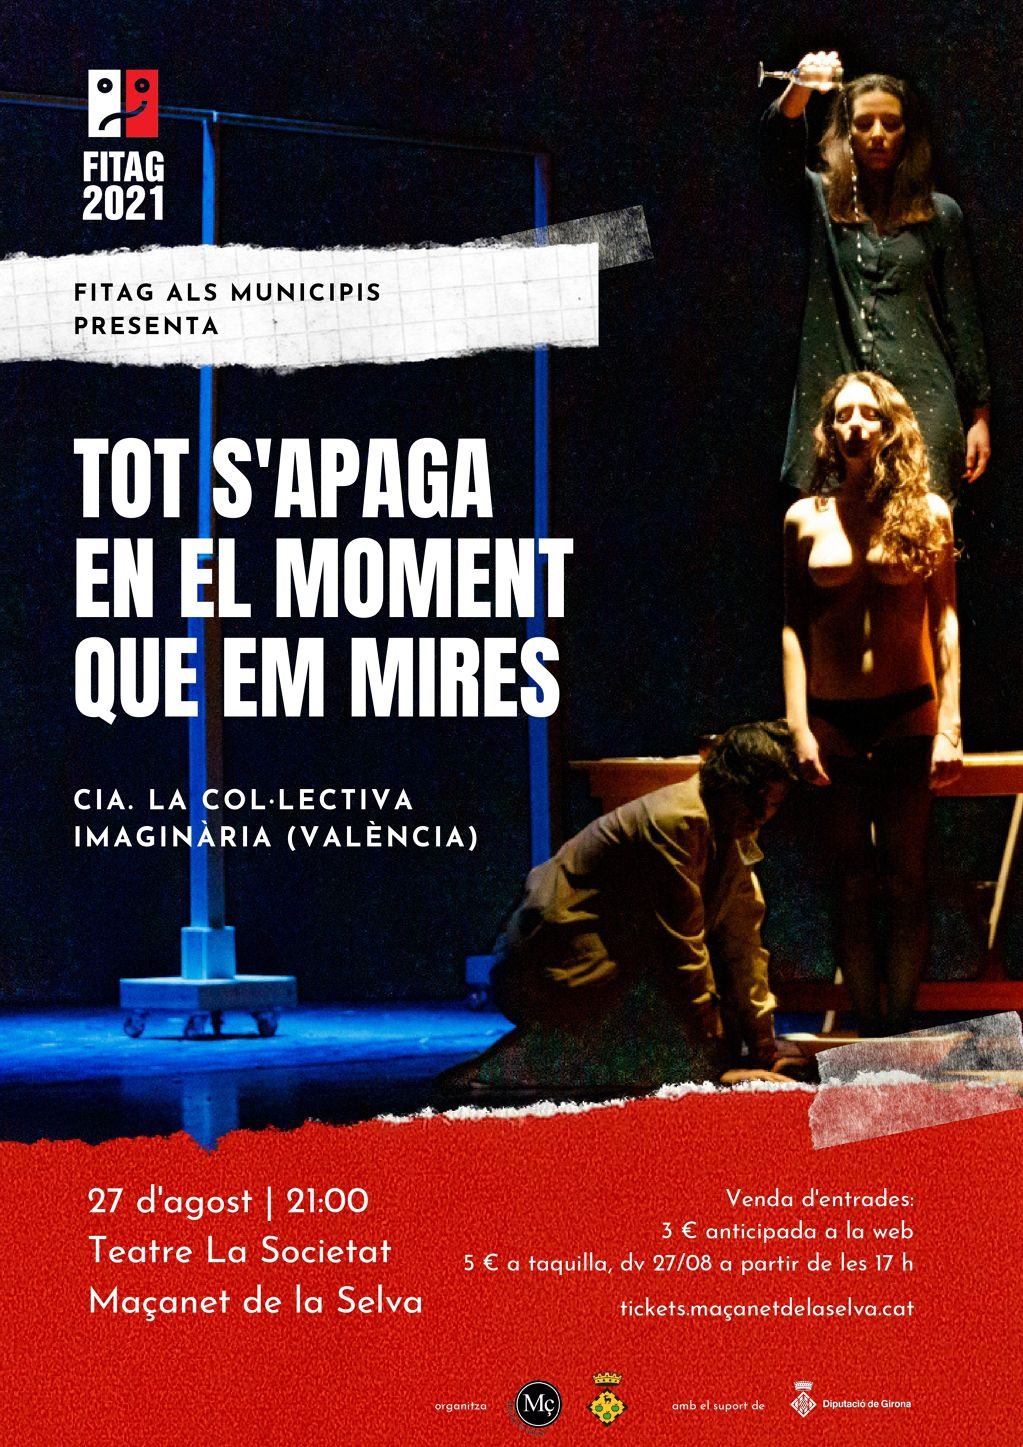 Fitag Teatre - 2c81d-Poster_FITAG_Macanet_2_page-0001.jpg